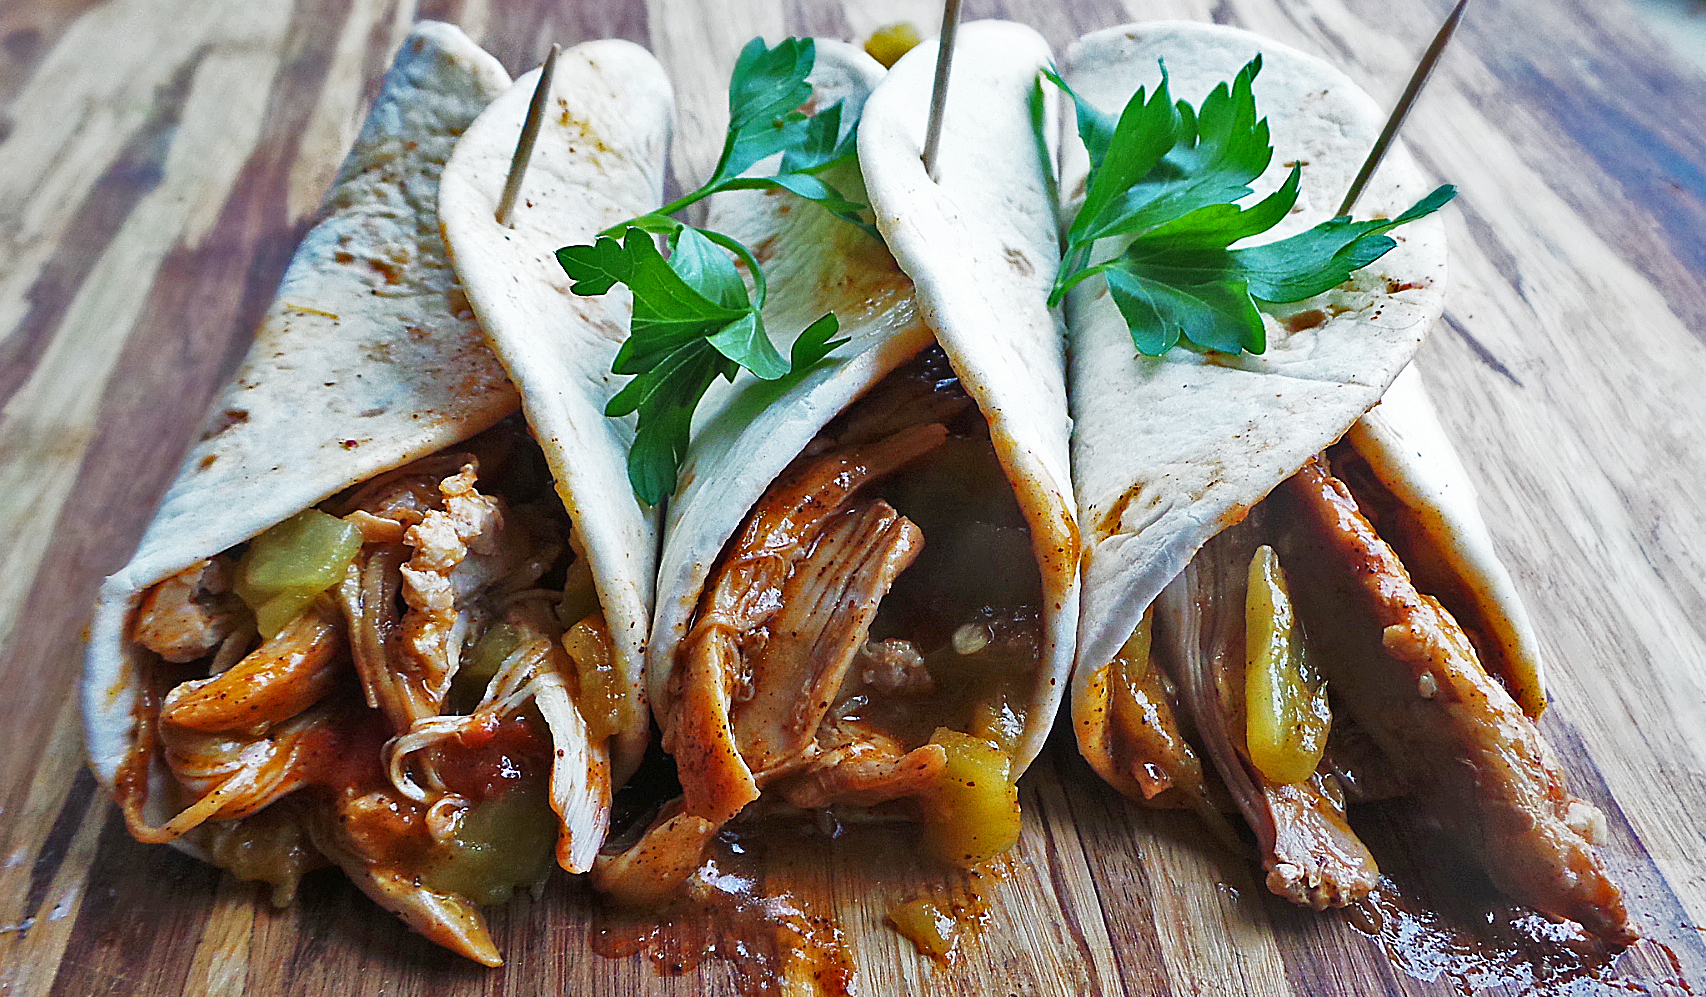 tacos shredded chicken tacos basic chicken tacos braised chicken tacos ...